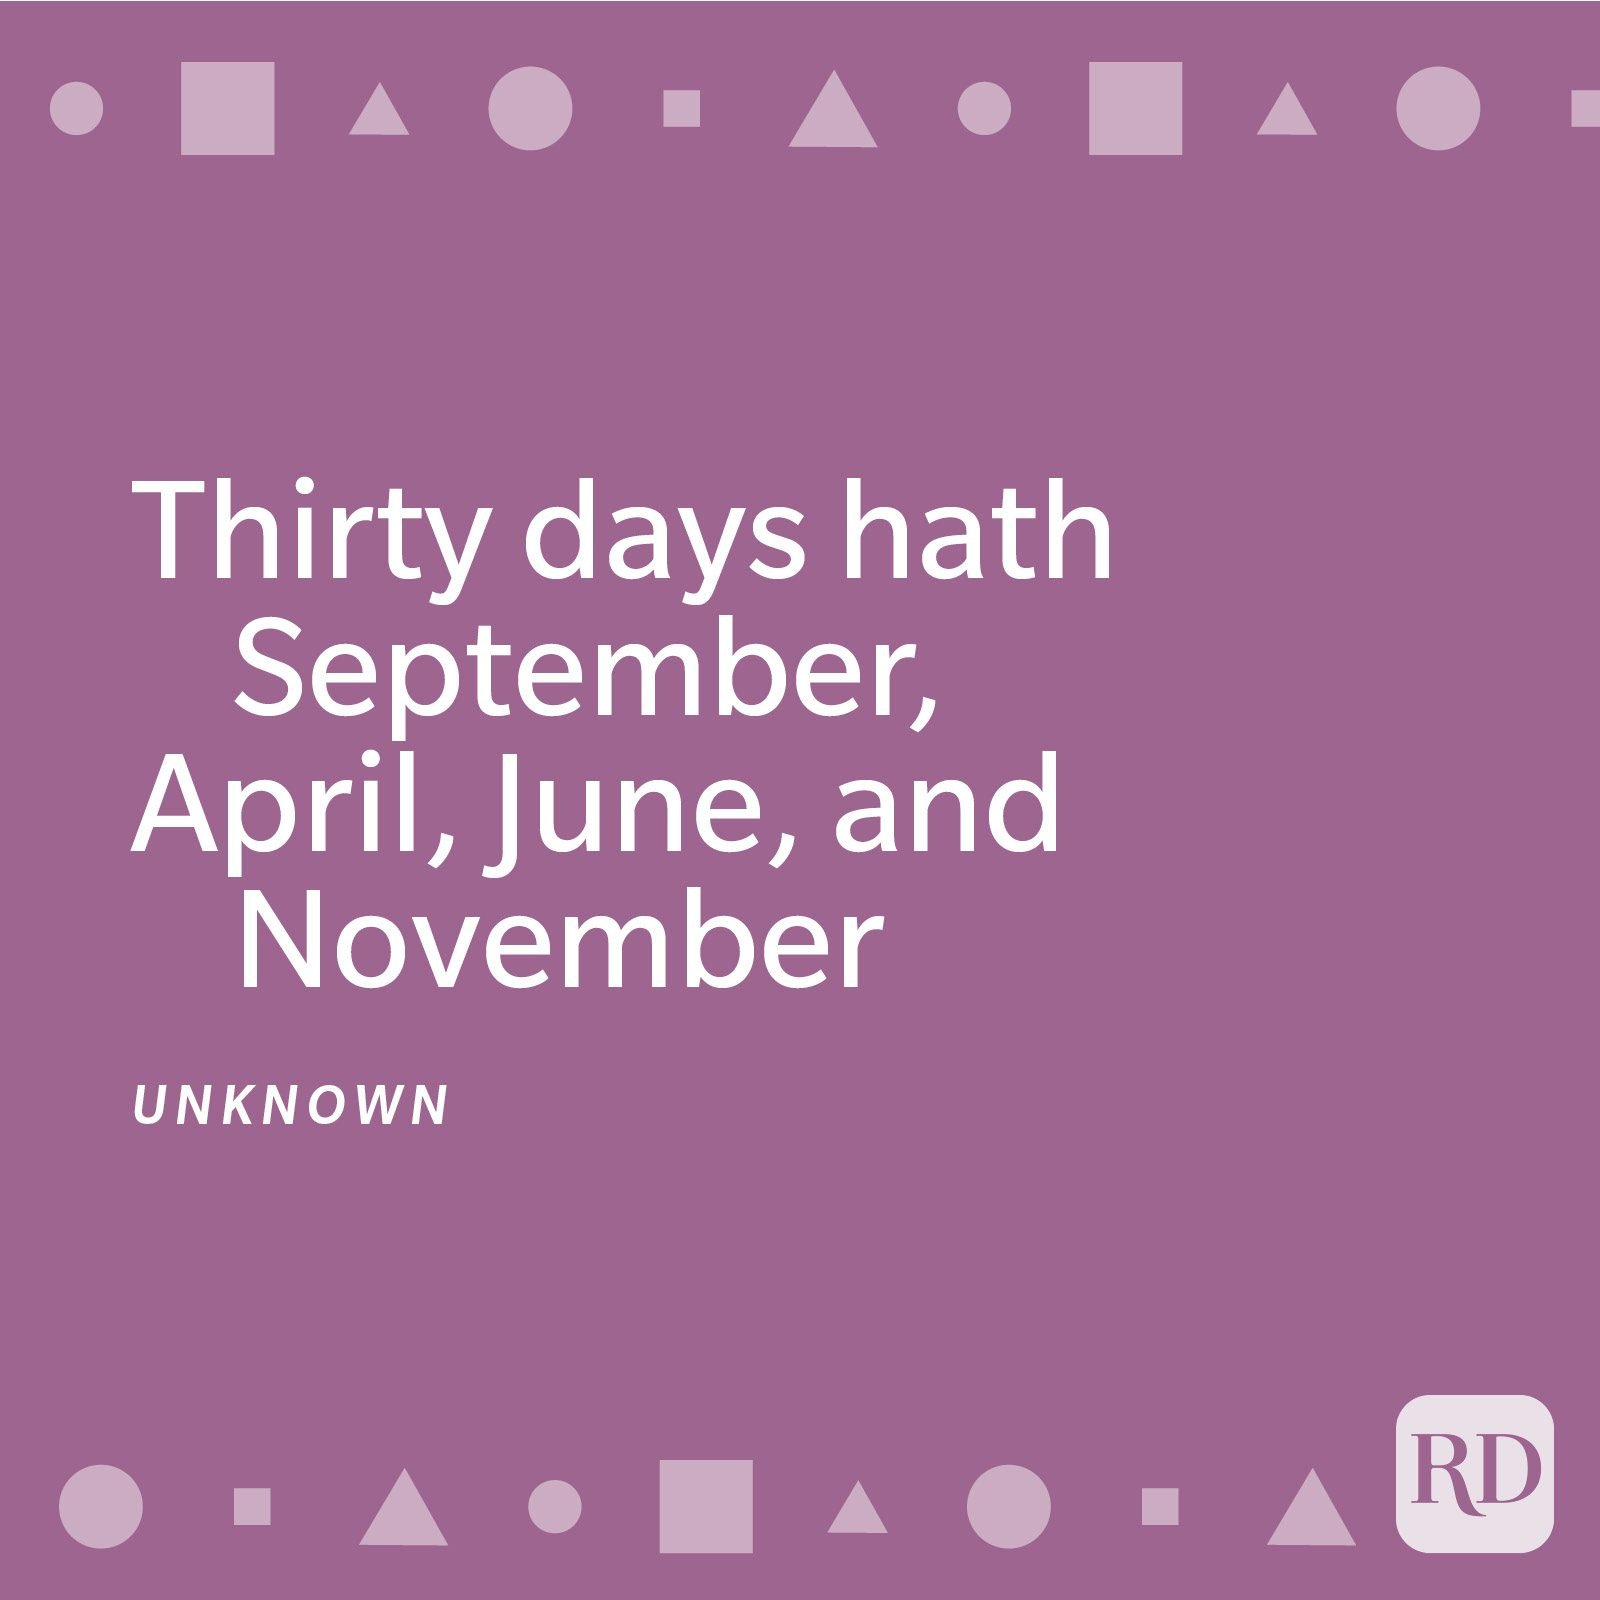 Thirty days hath September, April, June, and November; February has twenty-eight alone. All the rest have thirty-one, Excepting leap-year—that's the time When February's days are twenty-nine.